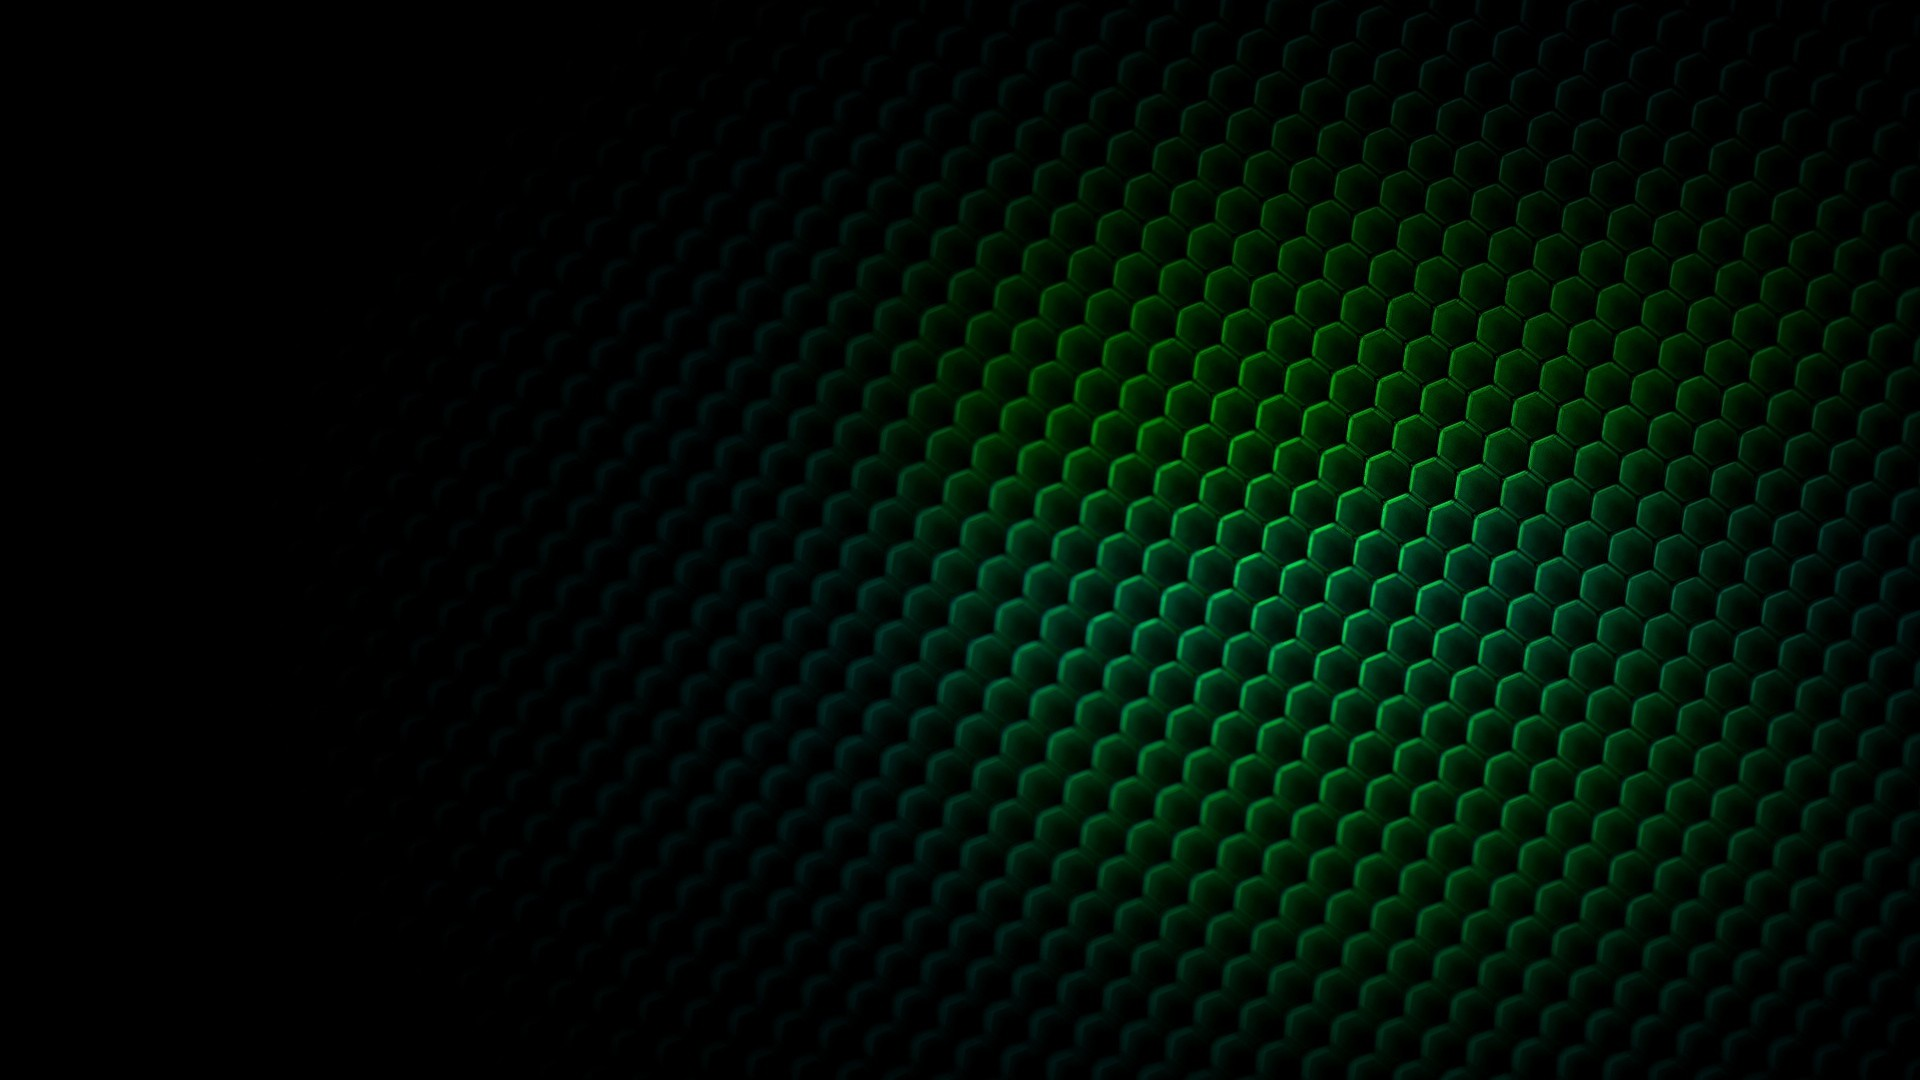 1920x1080 Awesome Dark Green Wallpaper 41162